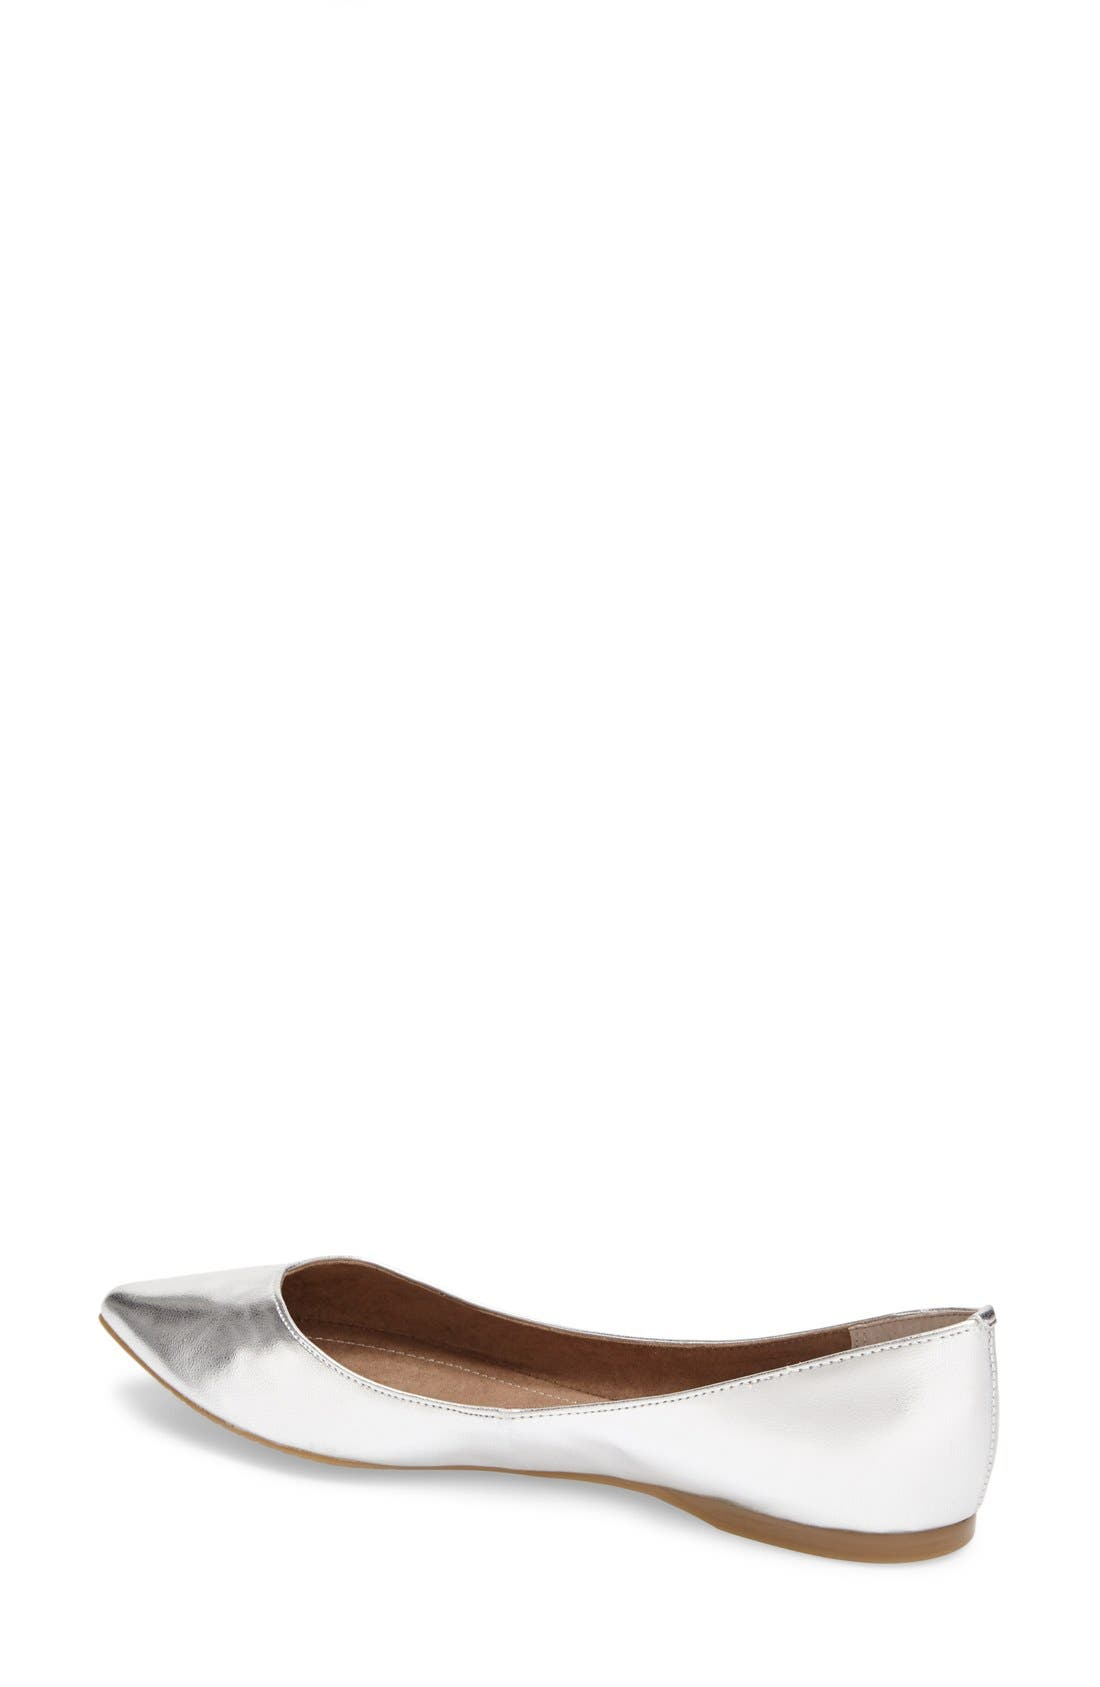 'Moveover' Pointy Toe Flat,                             Alternate thumbnail 17, color,